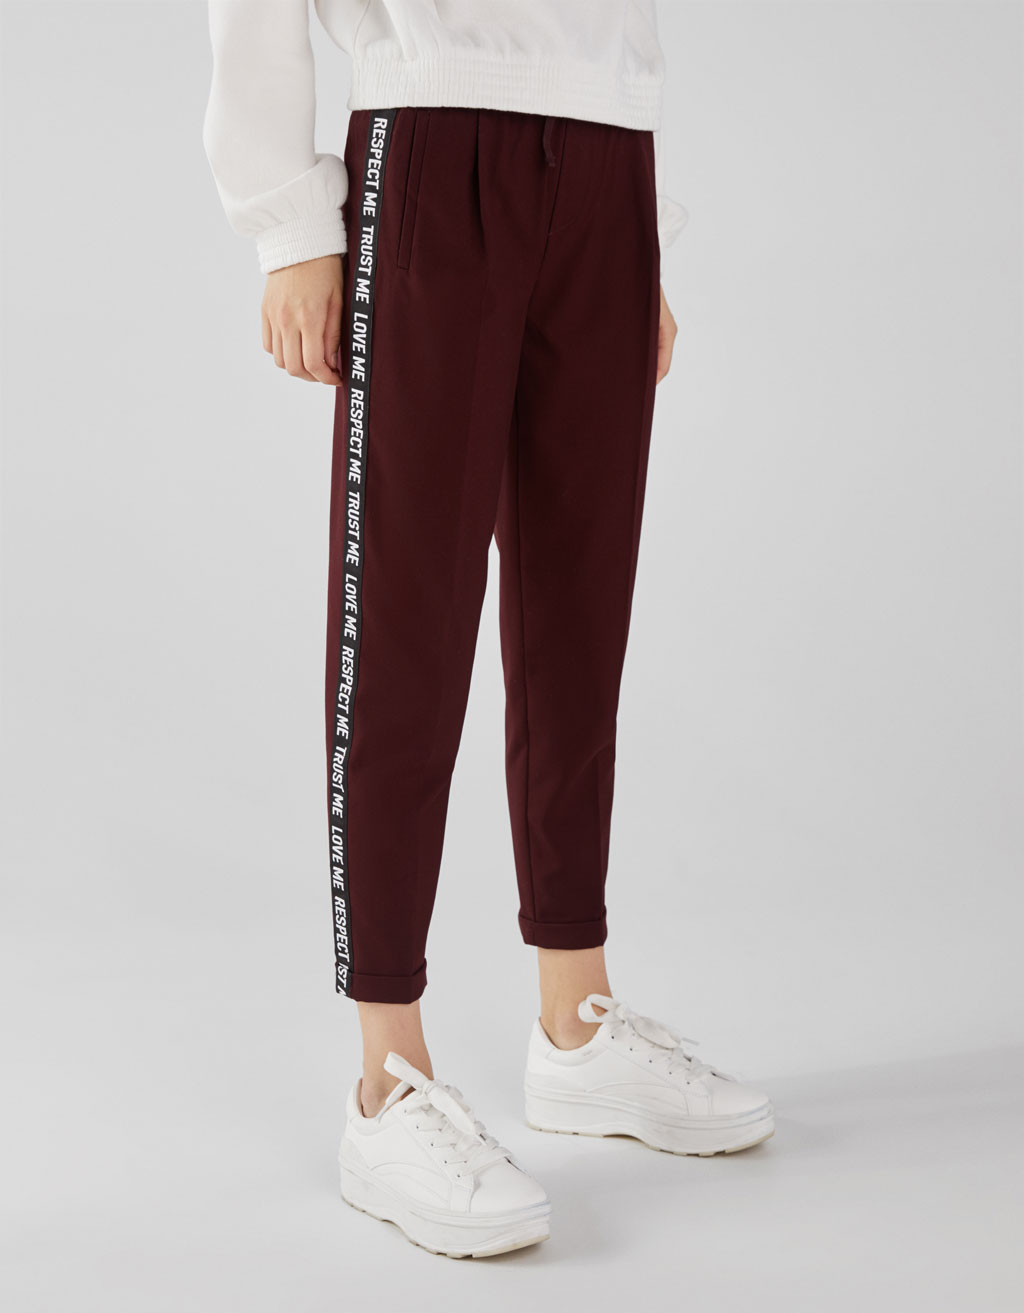 Tailored fit jogging trousers